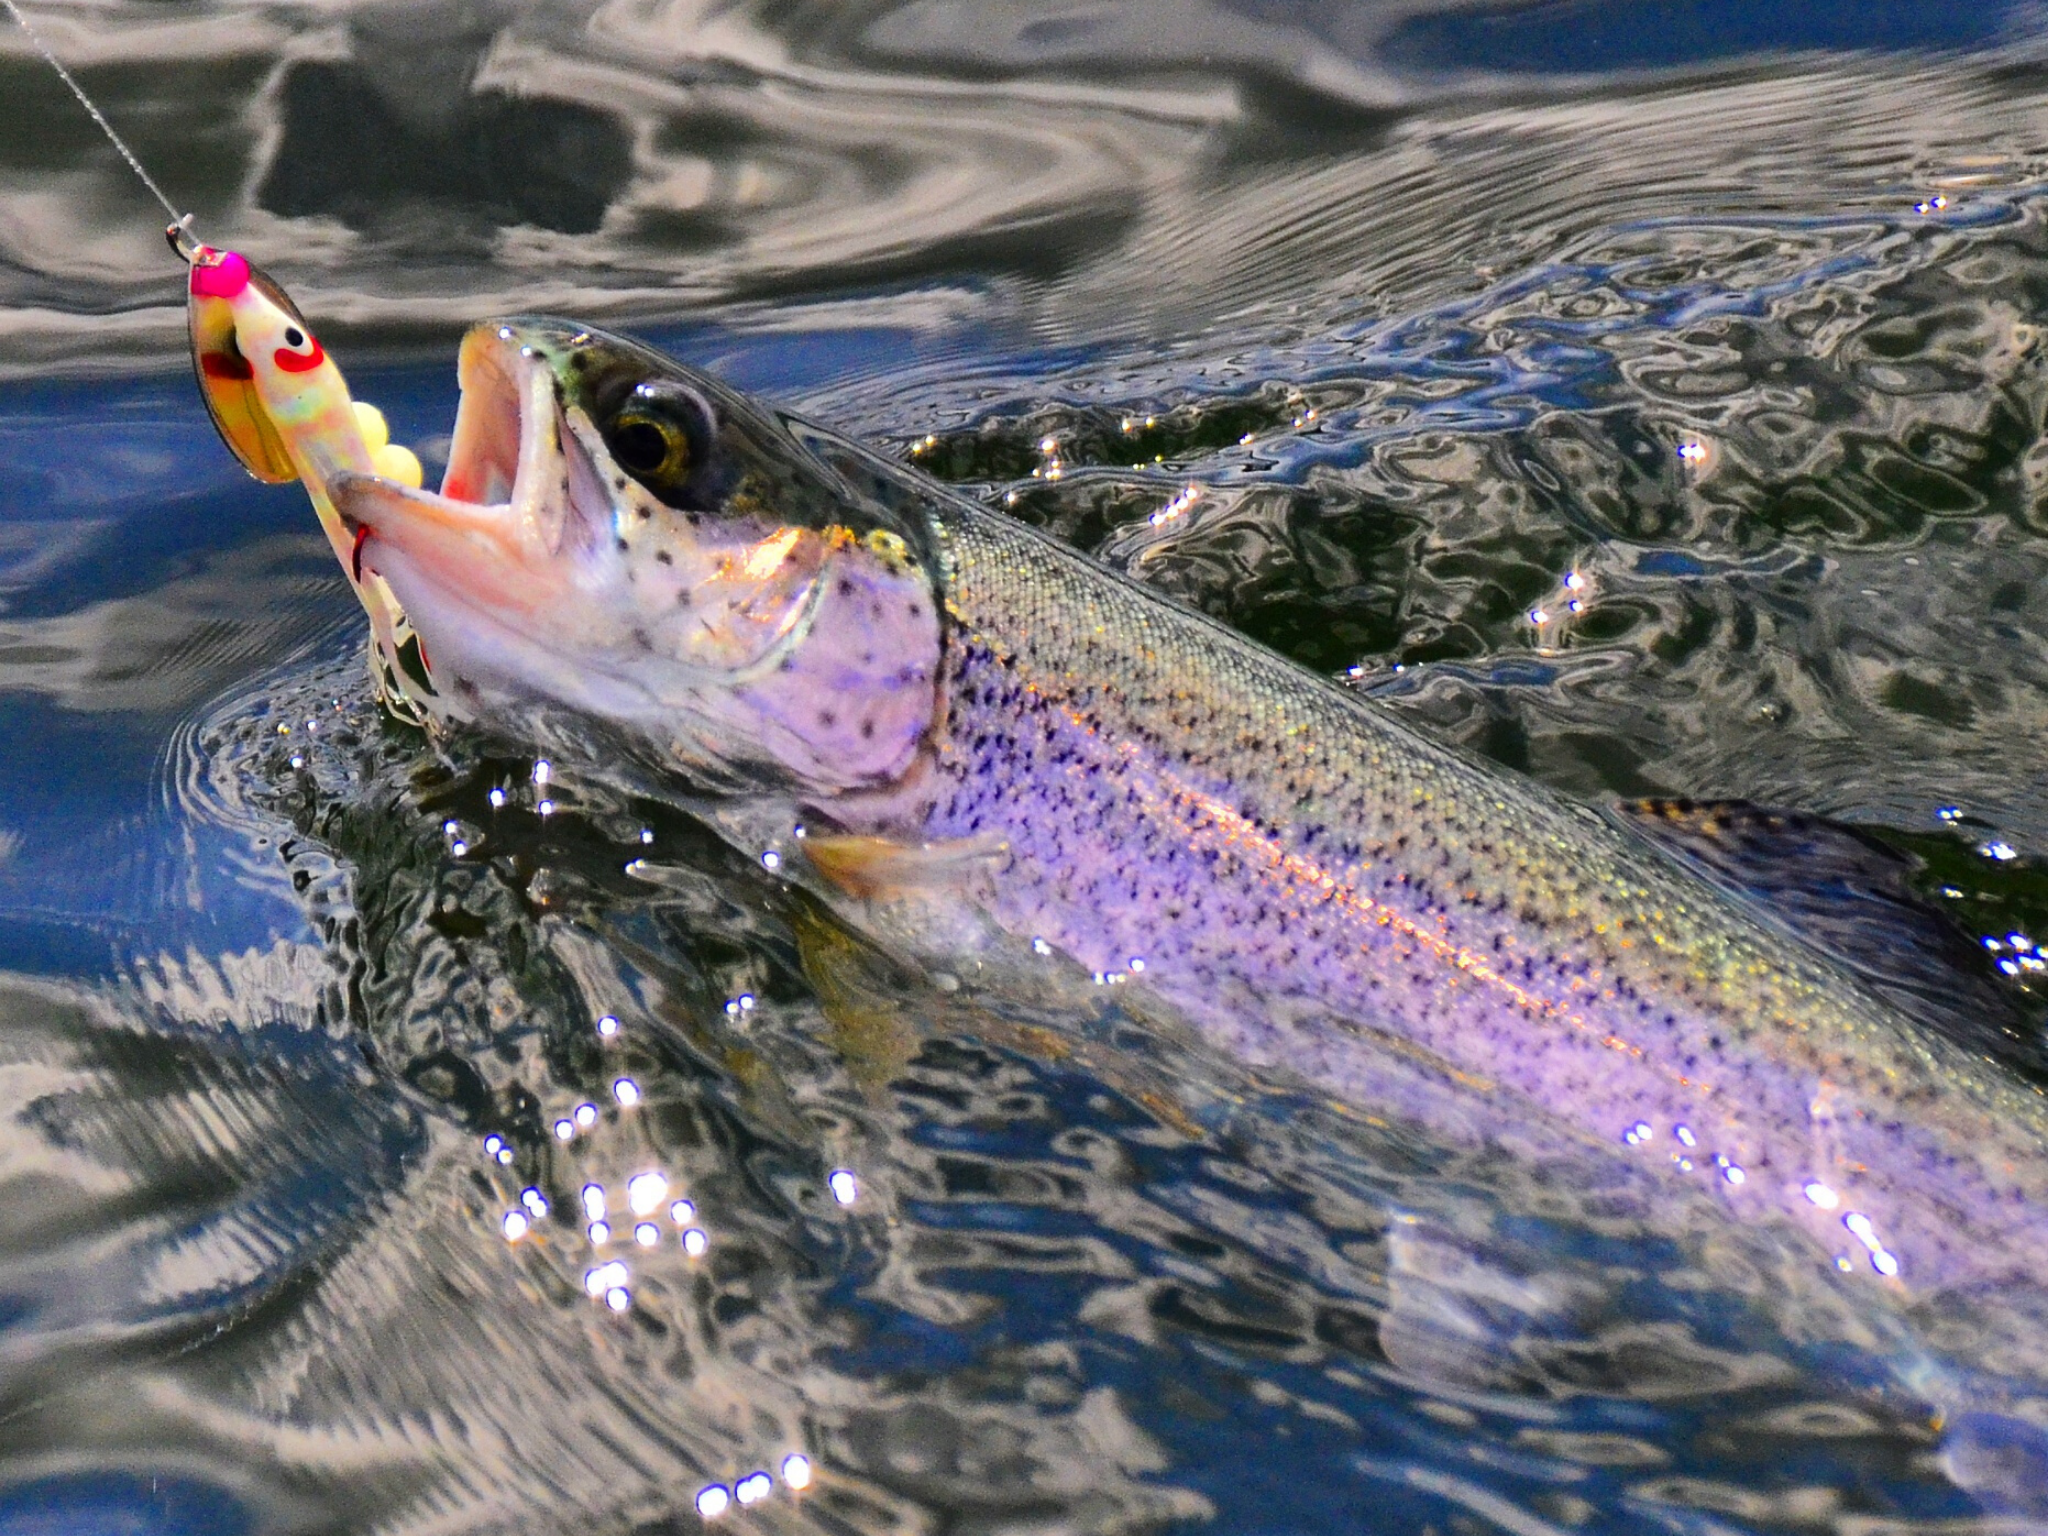 Rainbow trout gets reeled in.